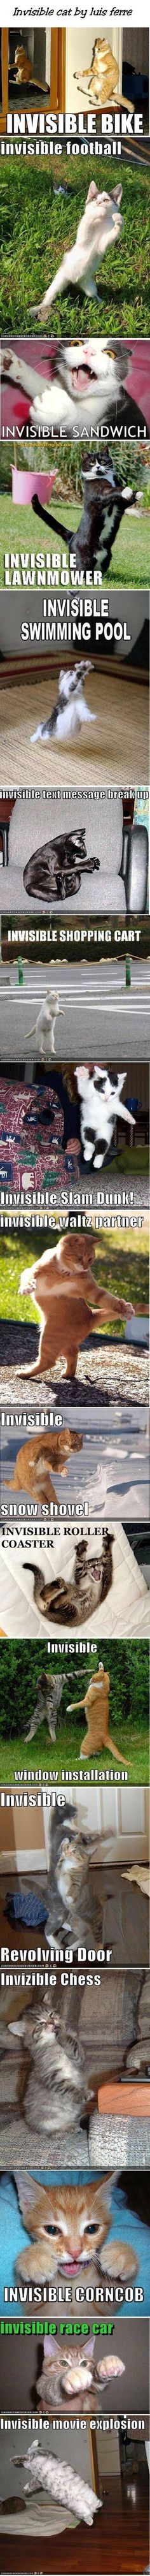 The lawnmower cat is soooo cute! And the breakup one is great. The waltz one looks more like salsa dancing, though. (Favorite Meme)